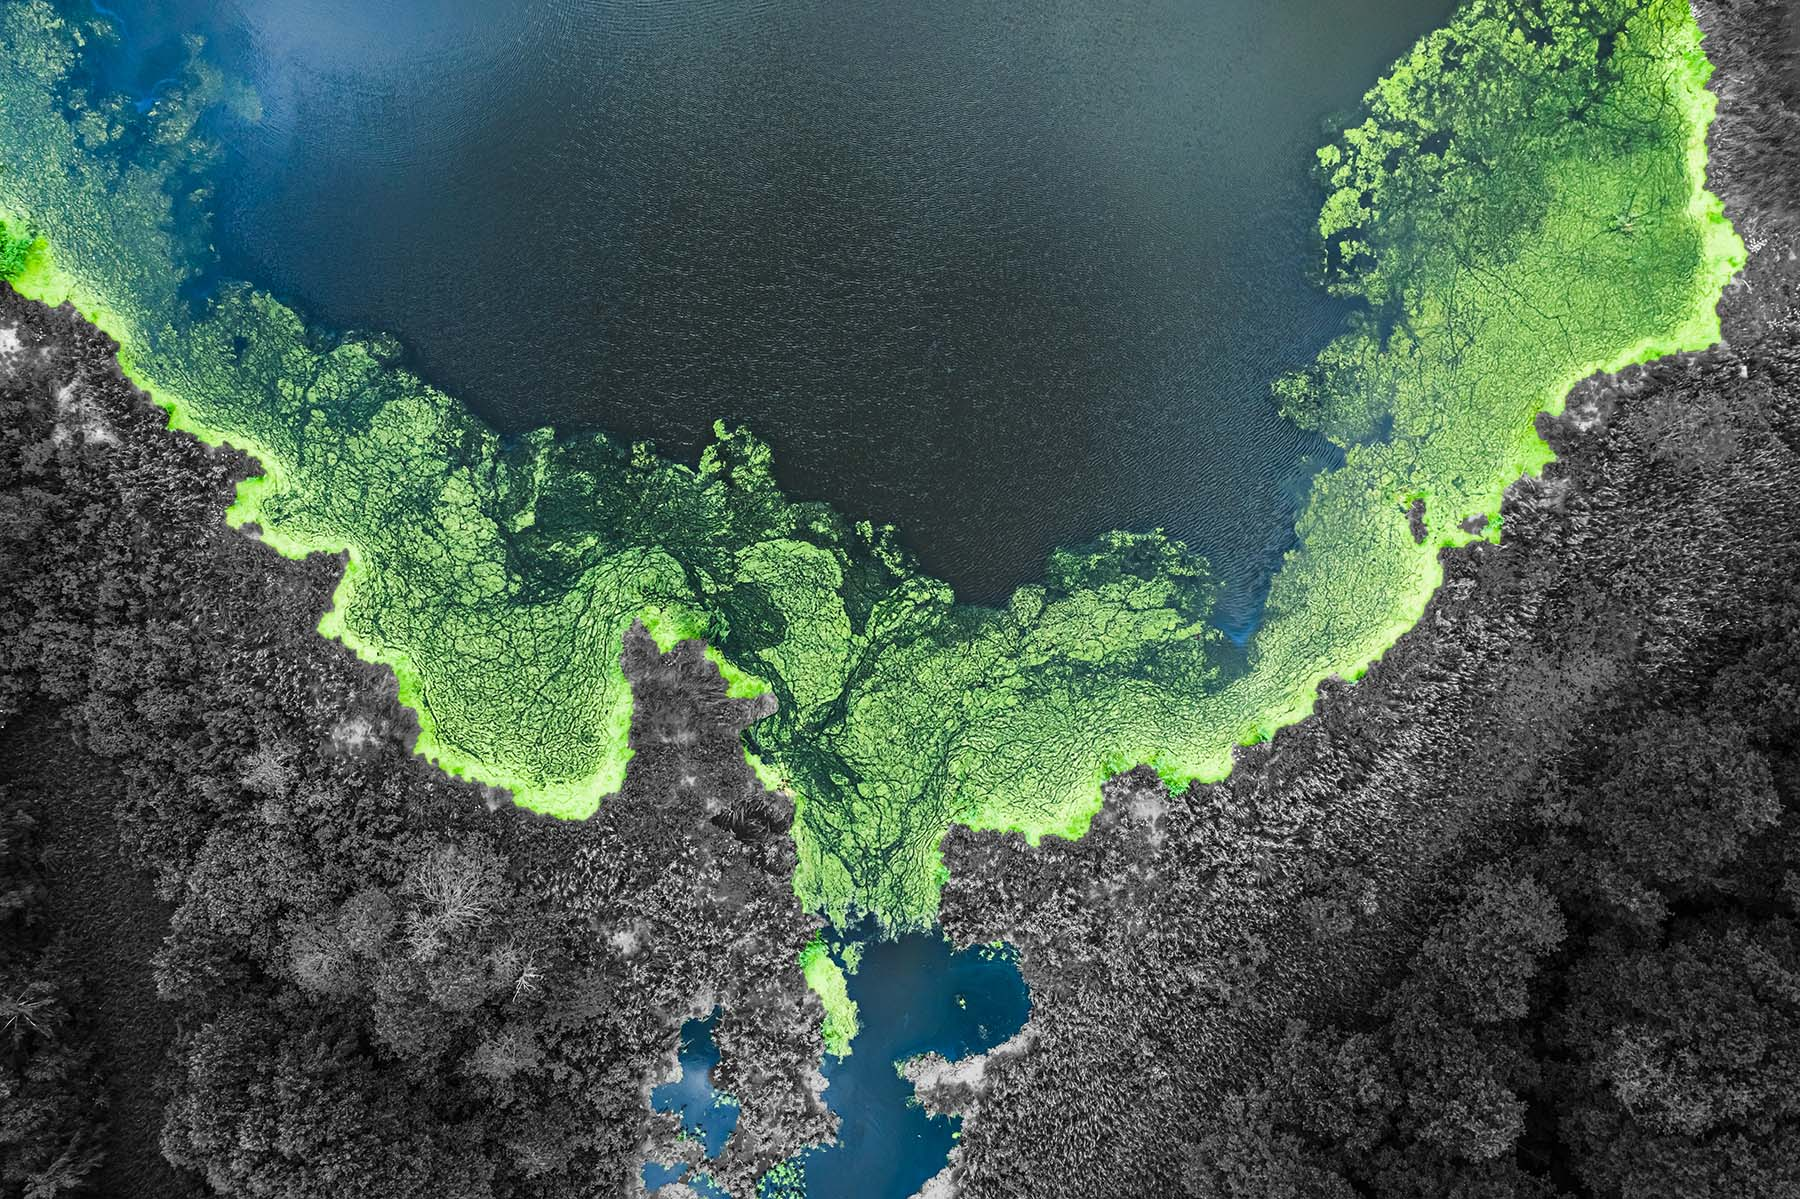 From bloom to bust: Algae, the bountiful scum of the Earth